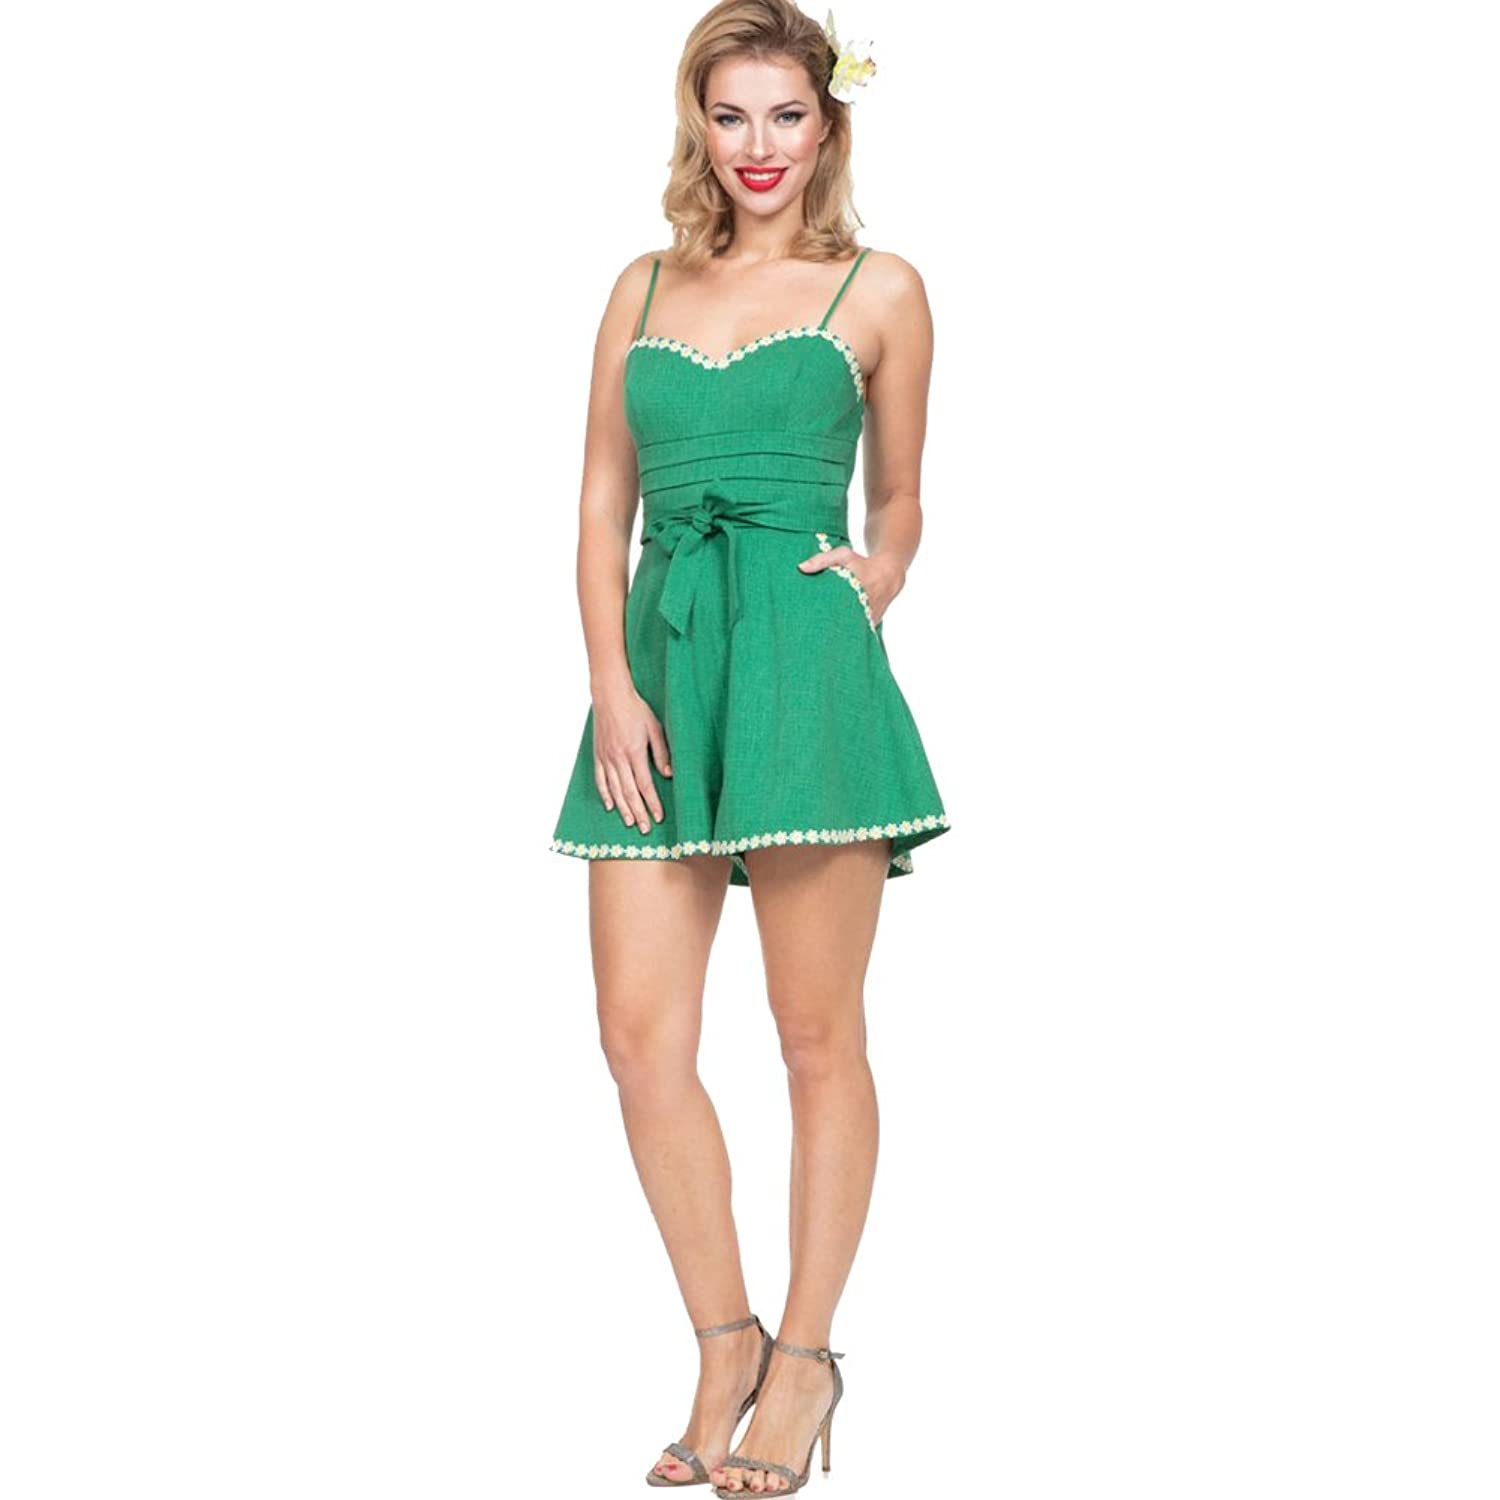 Vintage Rompers and Retro Playsuits Daisy Trimmed Playsuit Green $62.99 AT vintagedancer.com